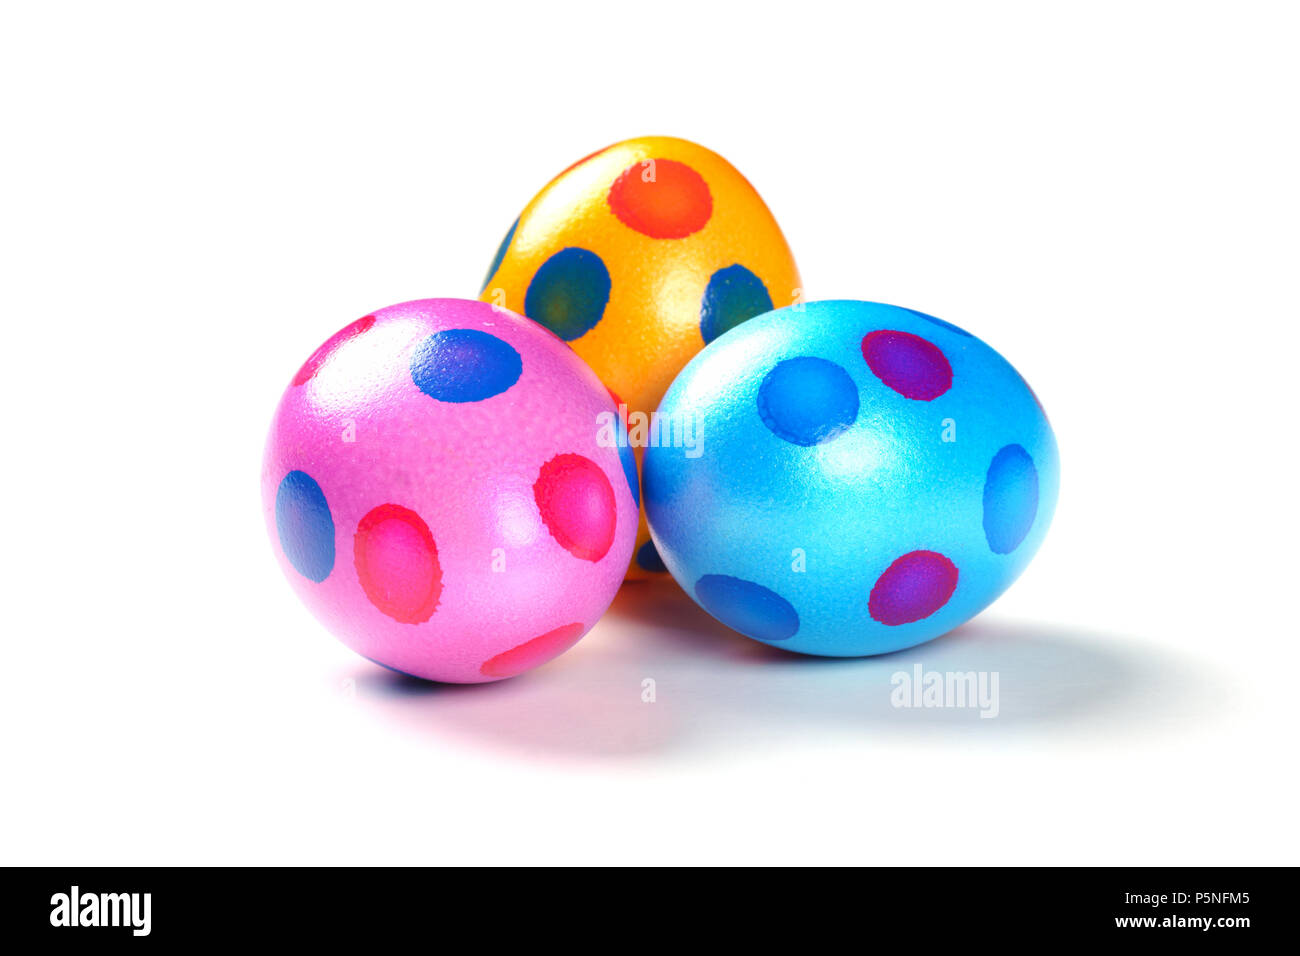 Three colorful Easter Eggs with dots on white Background - Isolated. - Stock Image